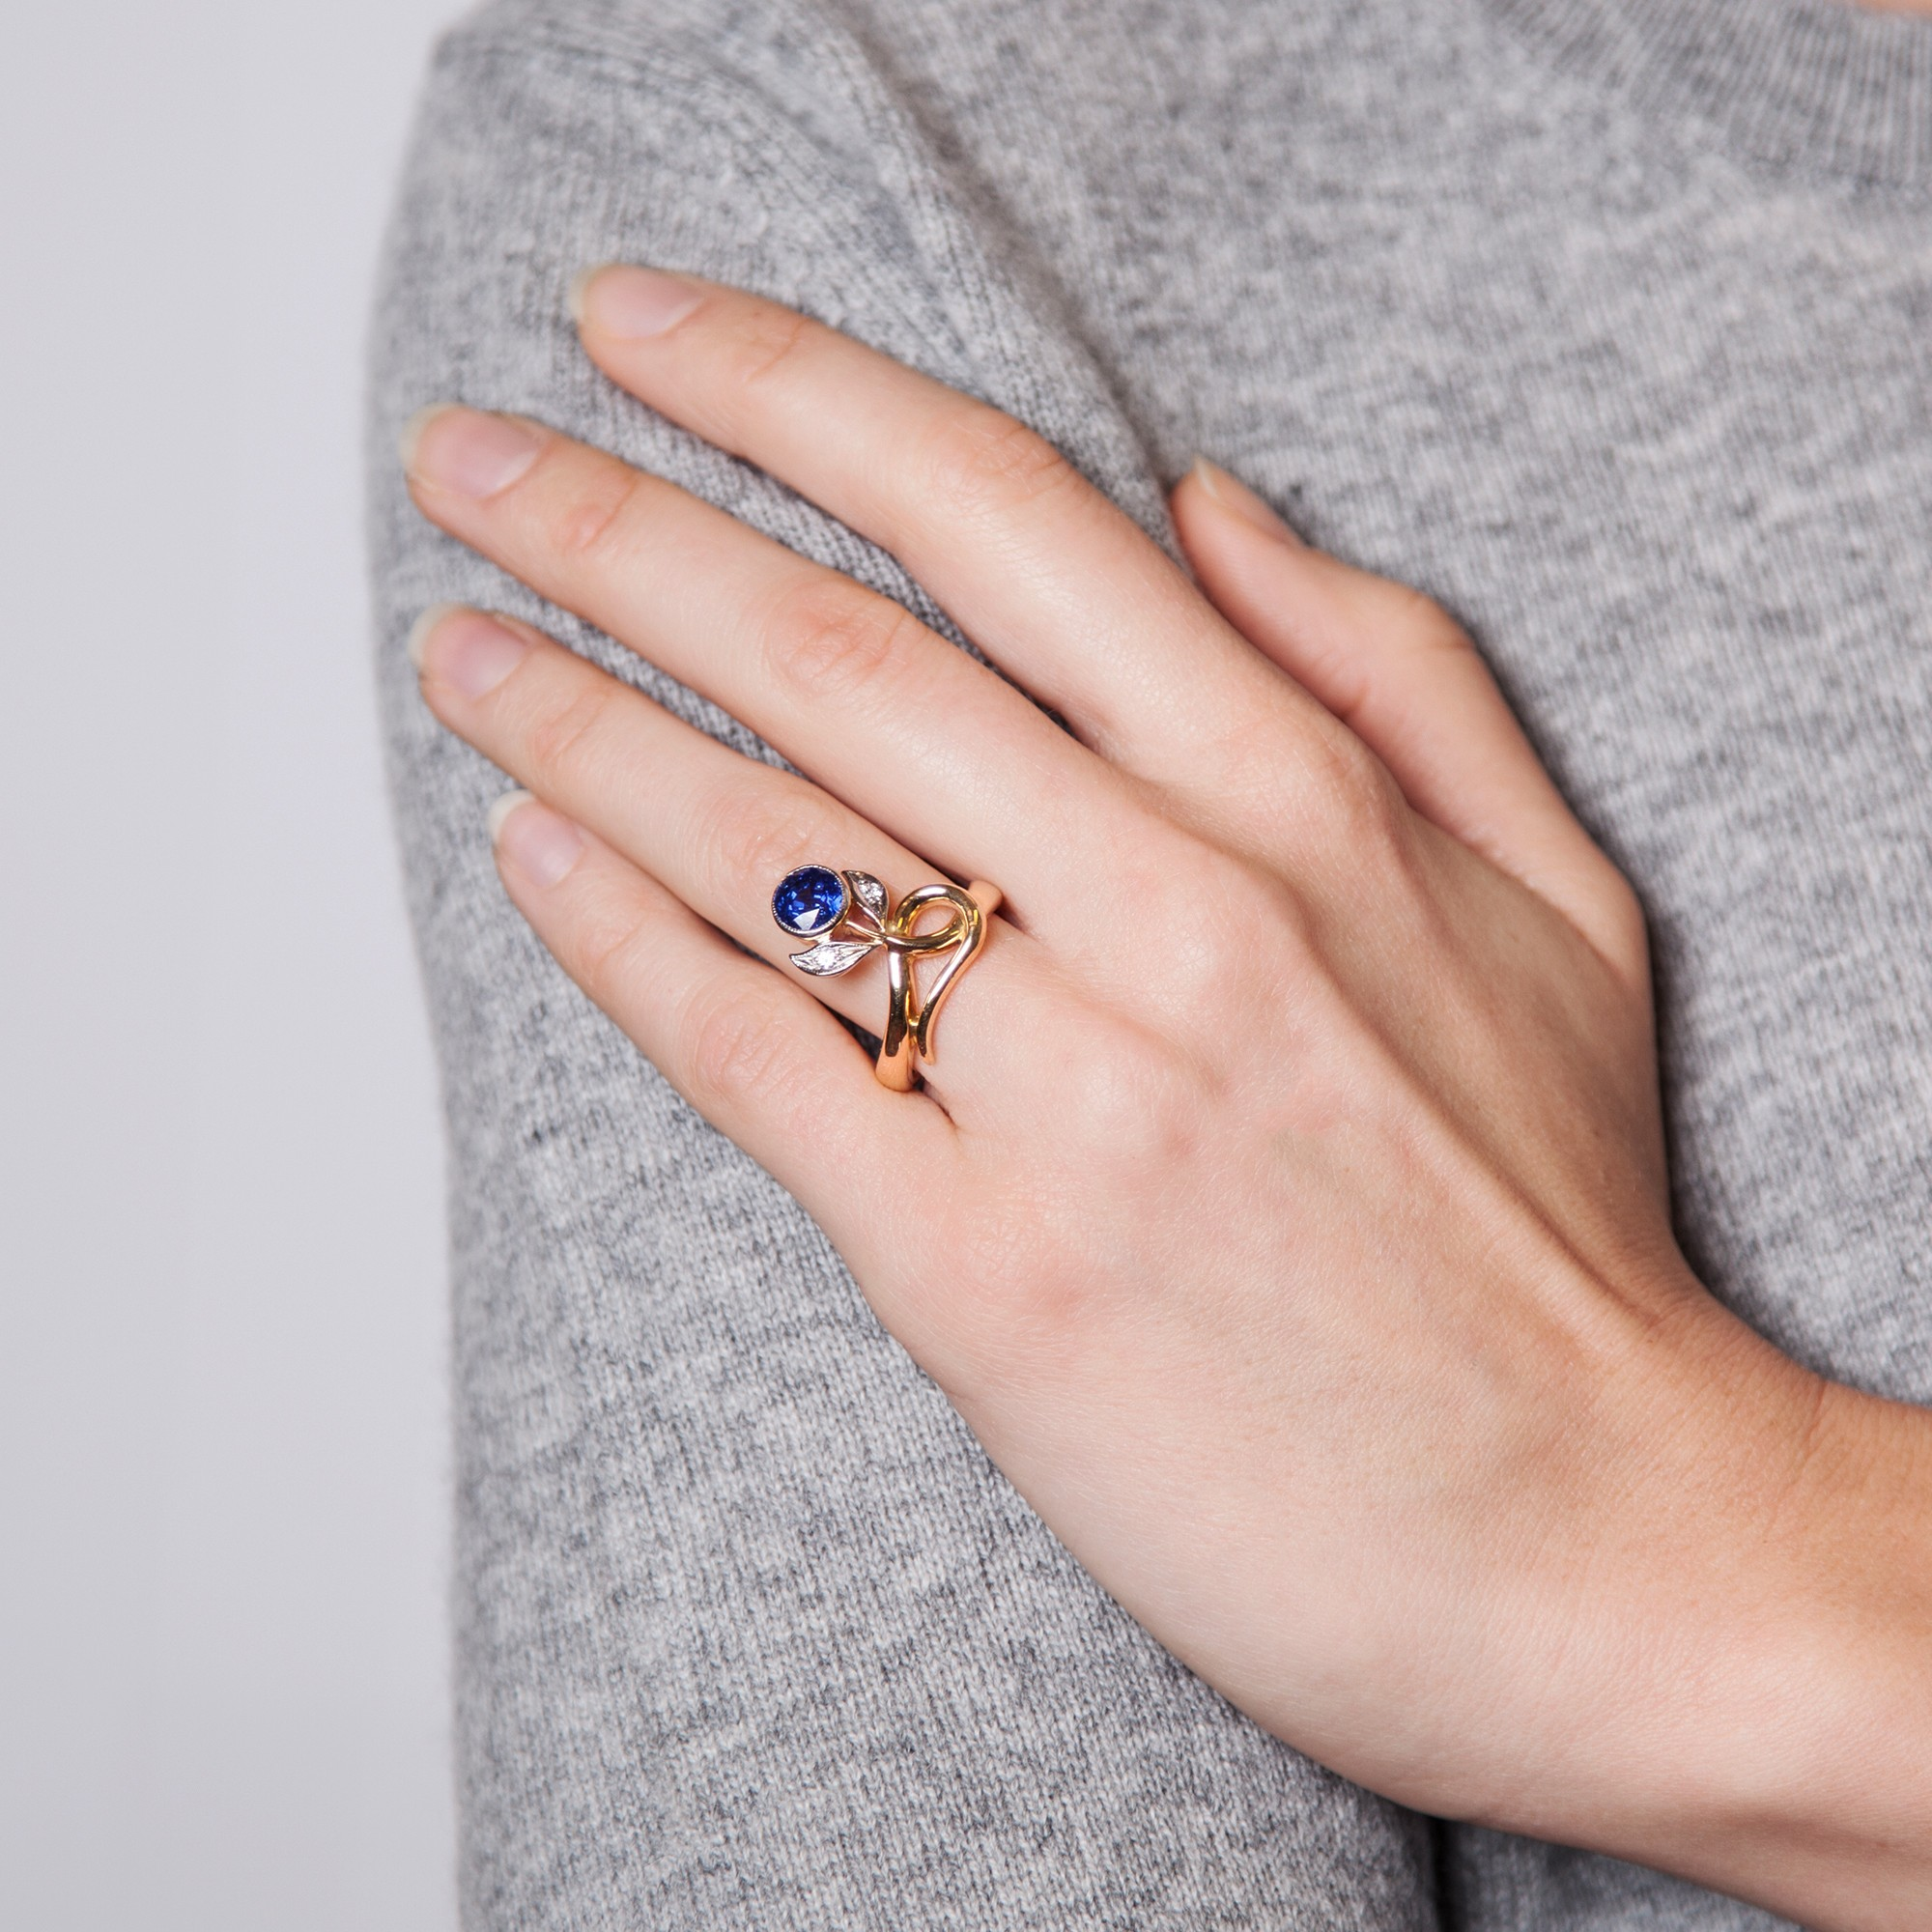 Fabulous Sapphire Ring with Diamond in 750 Gold & Platinum/Sapphire ...